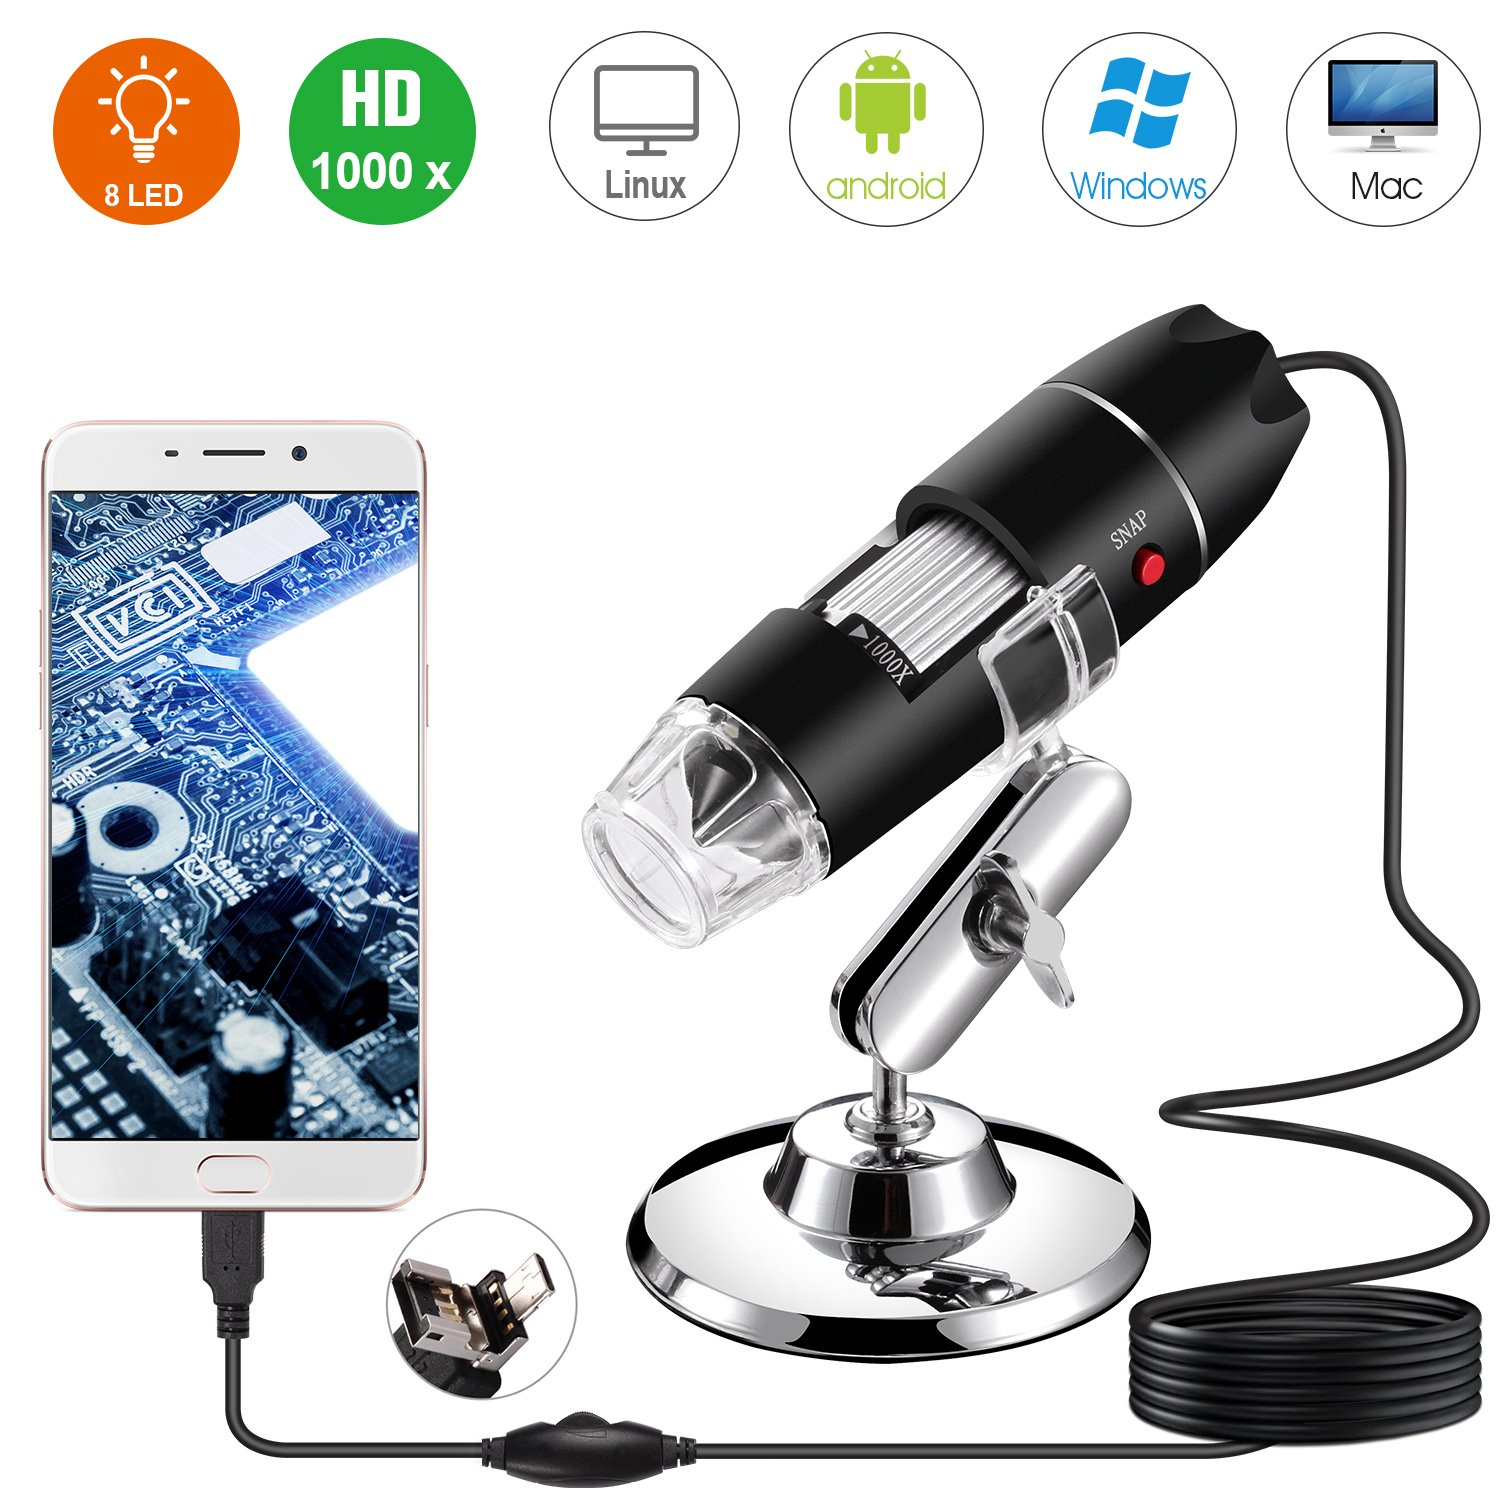 USB Digital Microscope, Bysameyee Handheld 40X-1000X Magnification Endoscope, 8 LED Mini Video Camera for Windows 7/8/10 Mac Linux Android (with OTG)